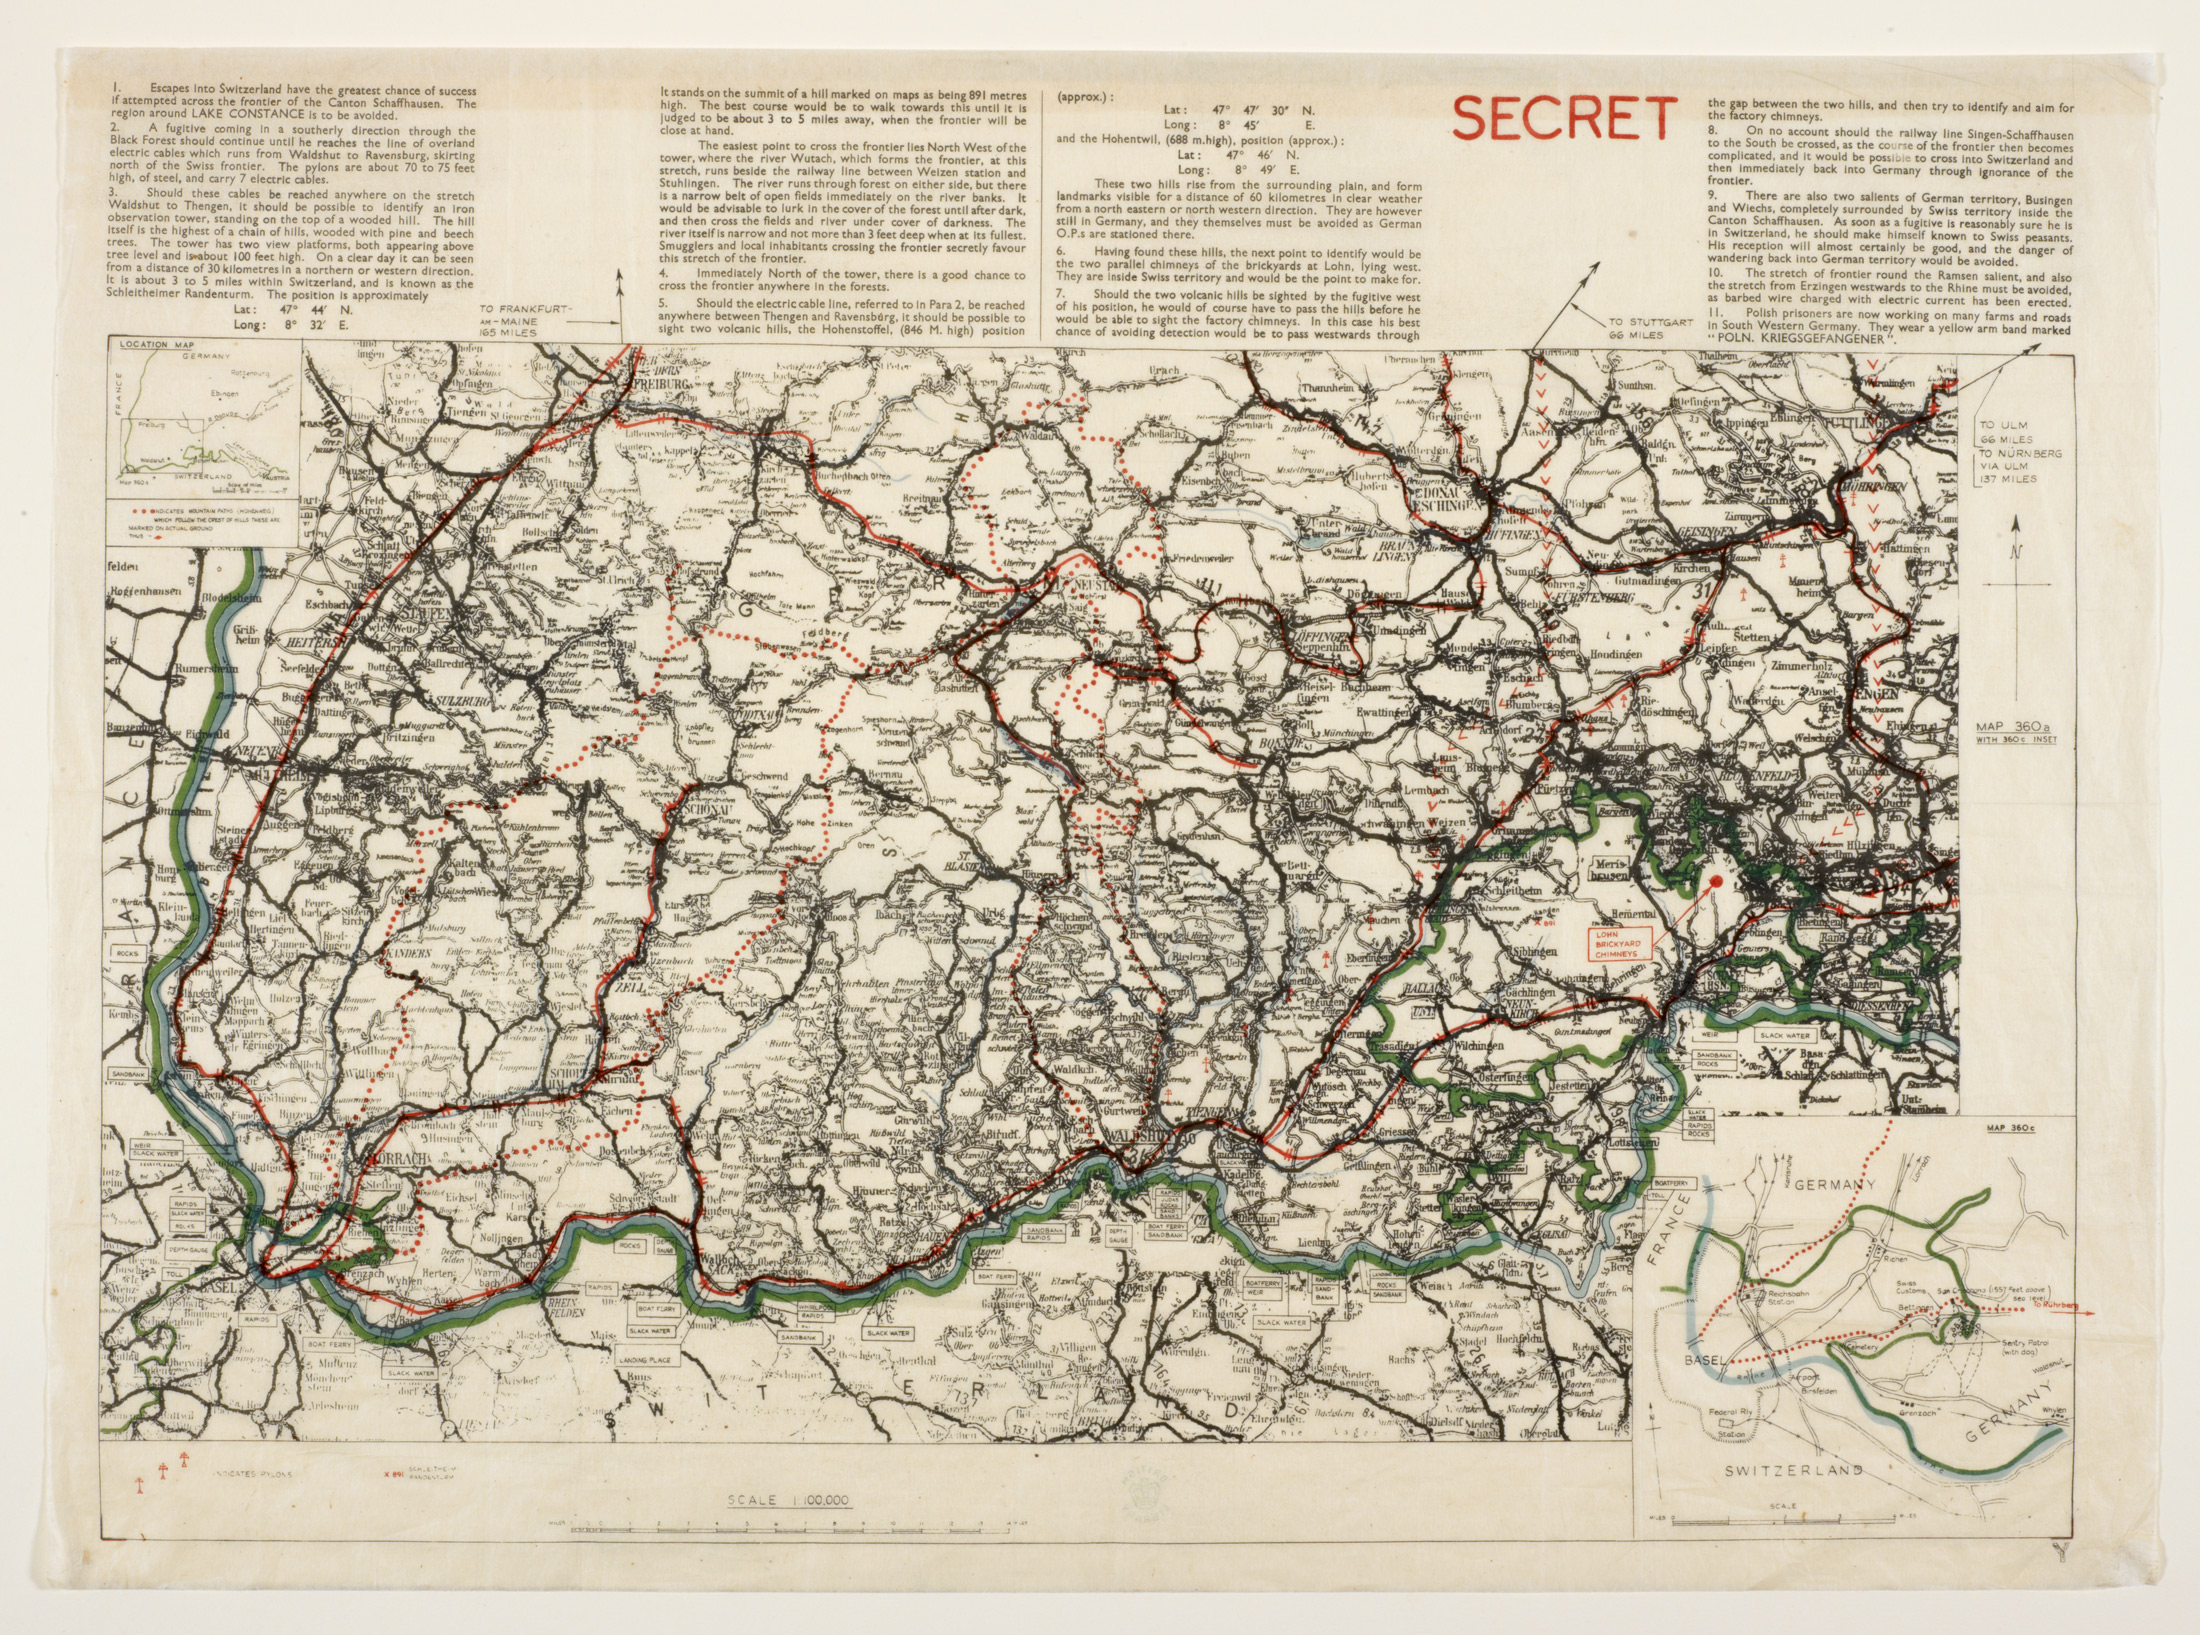 Maps and the 20th century drawing the line the bookhunter on safari - Secret escapes london office ...